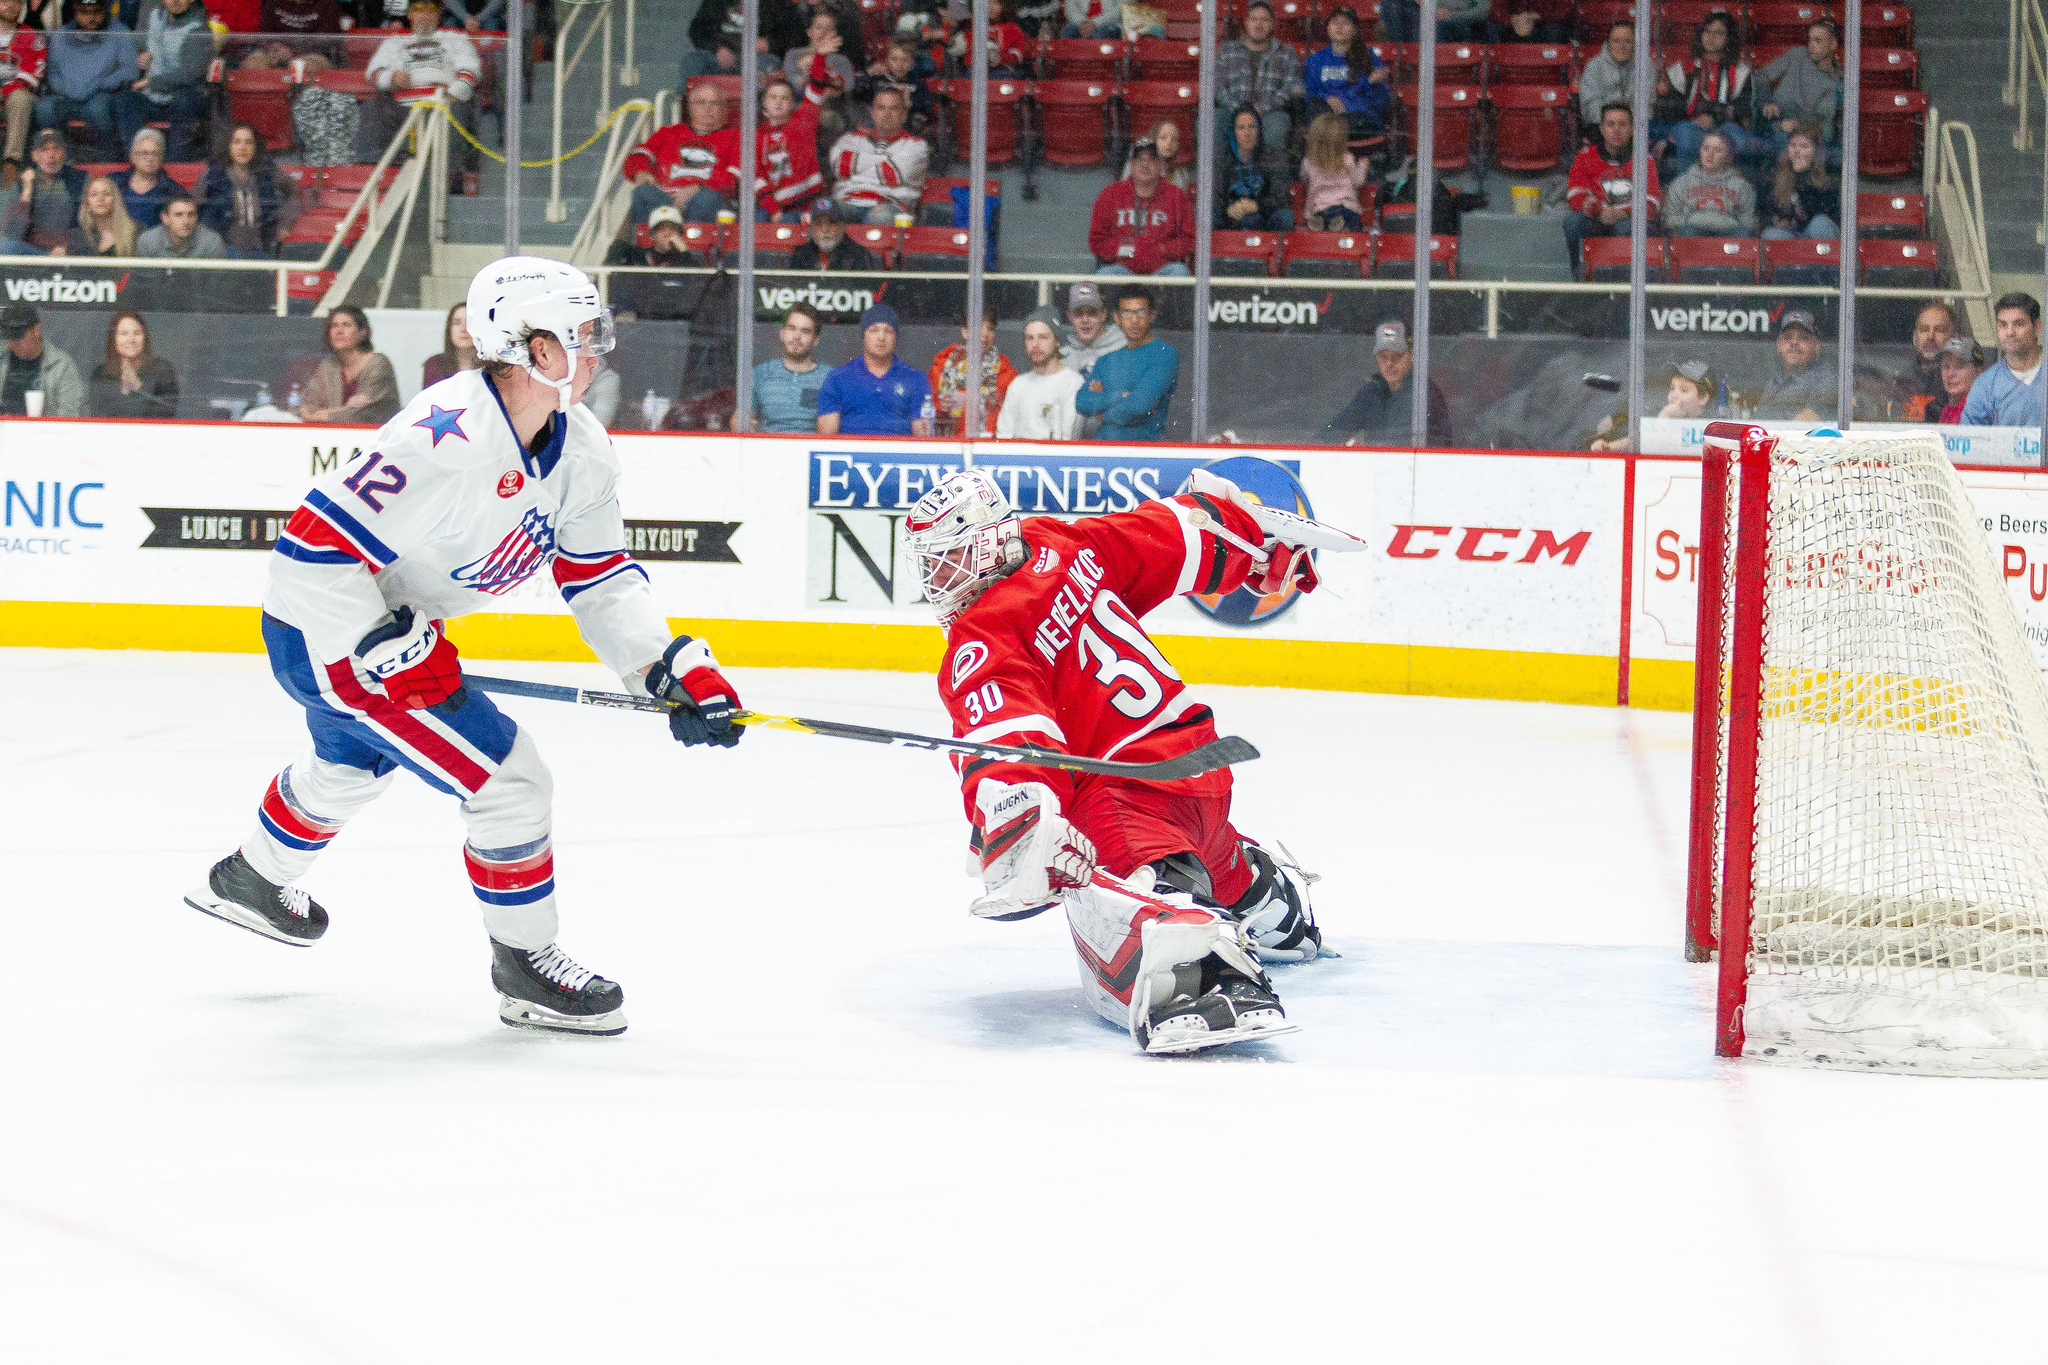 Amerks Lose 4-1 against the Checkers